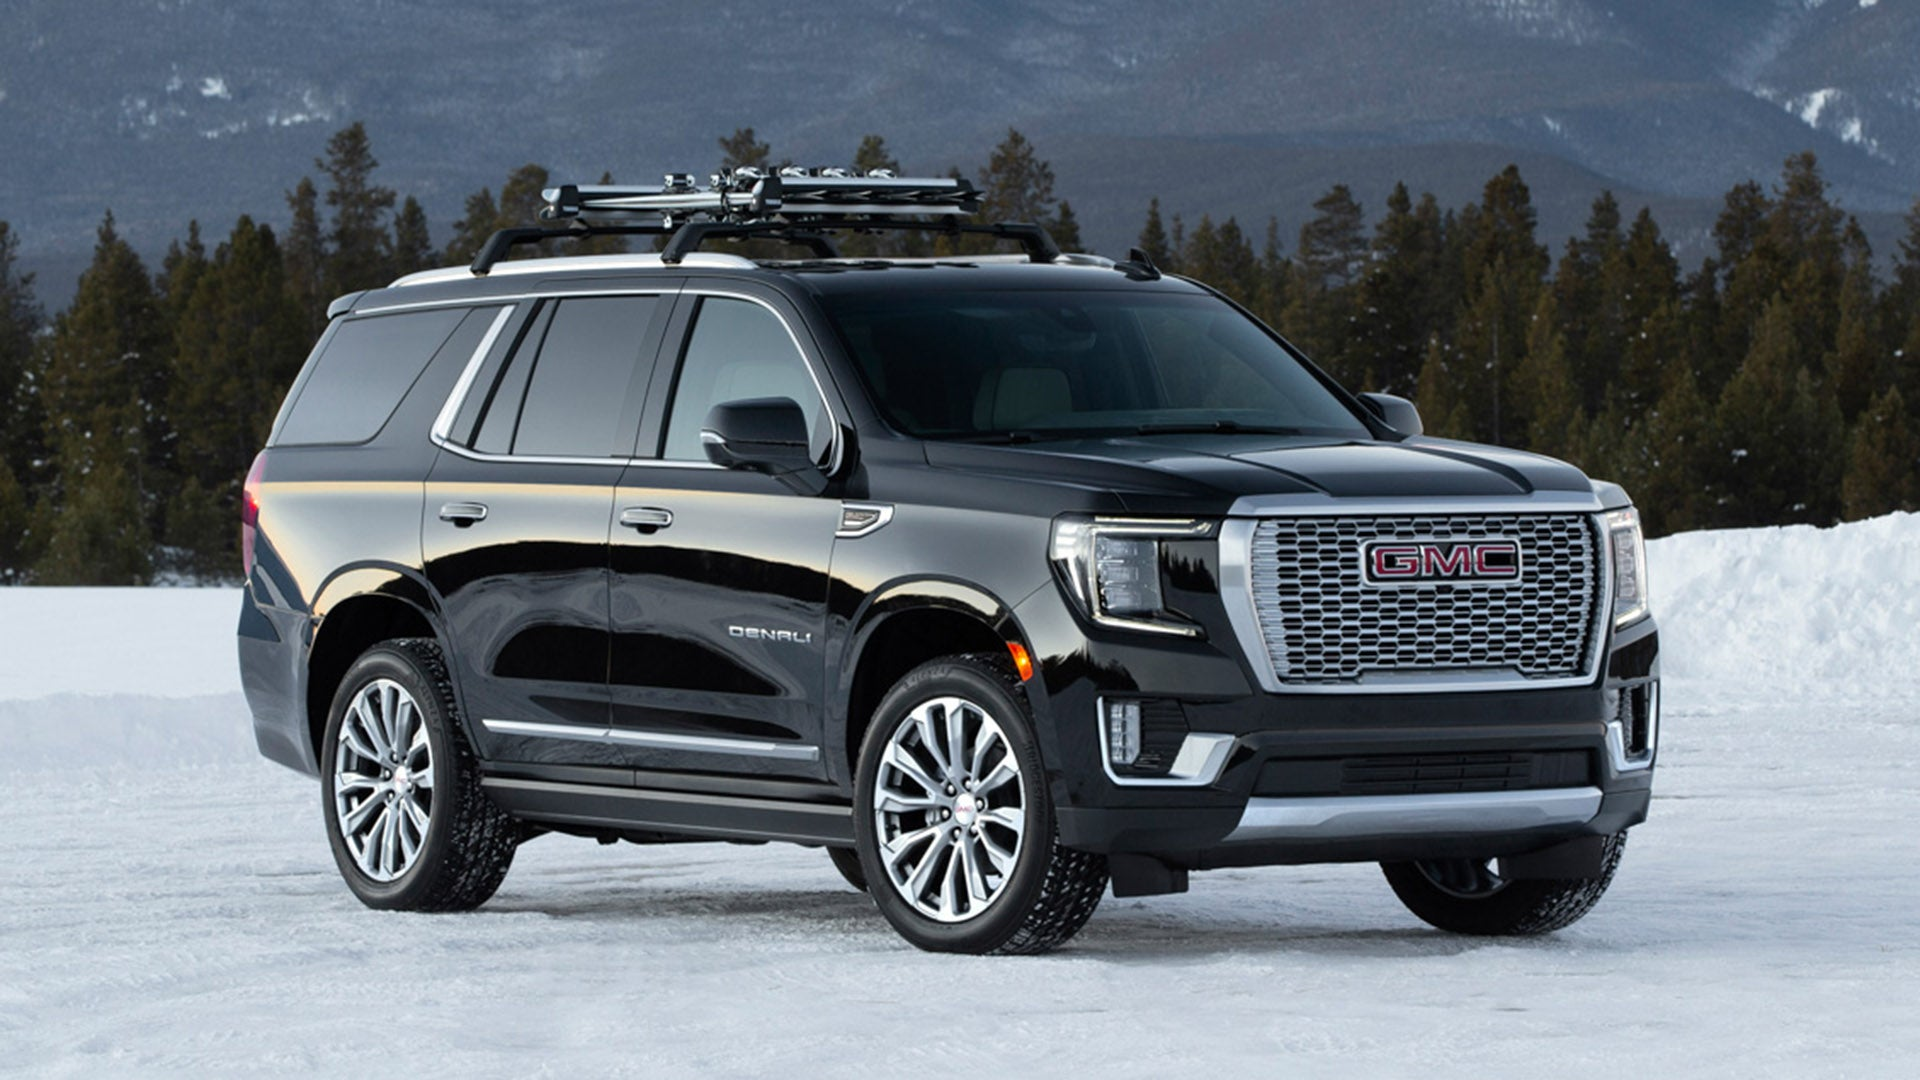 the all-new 2021 gmc yukon and yukon xl are here, and they